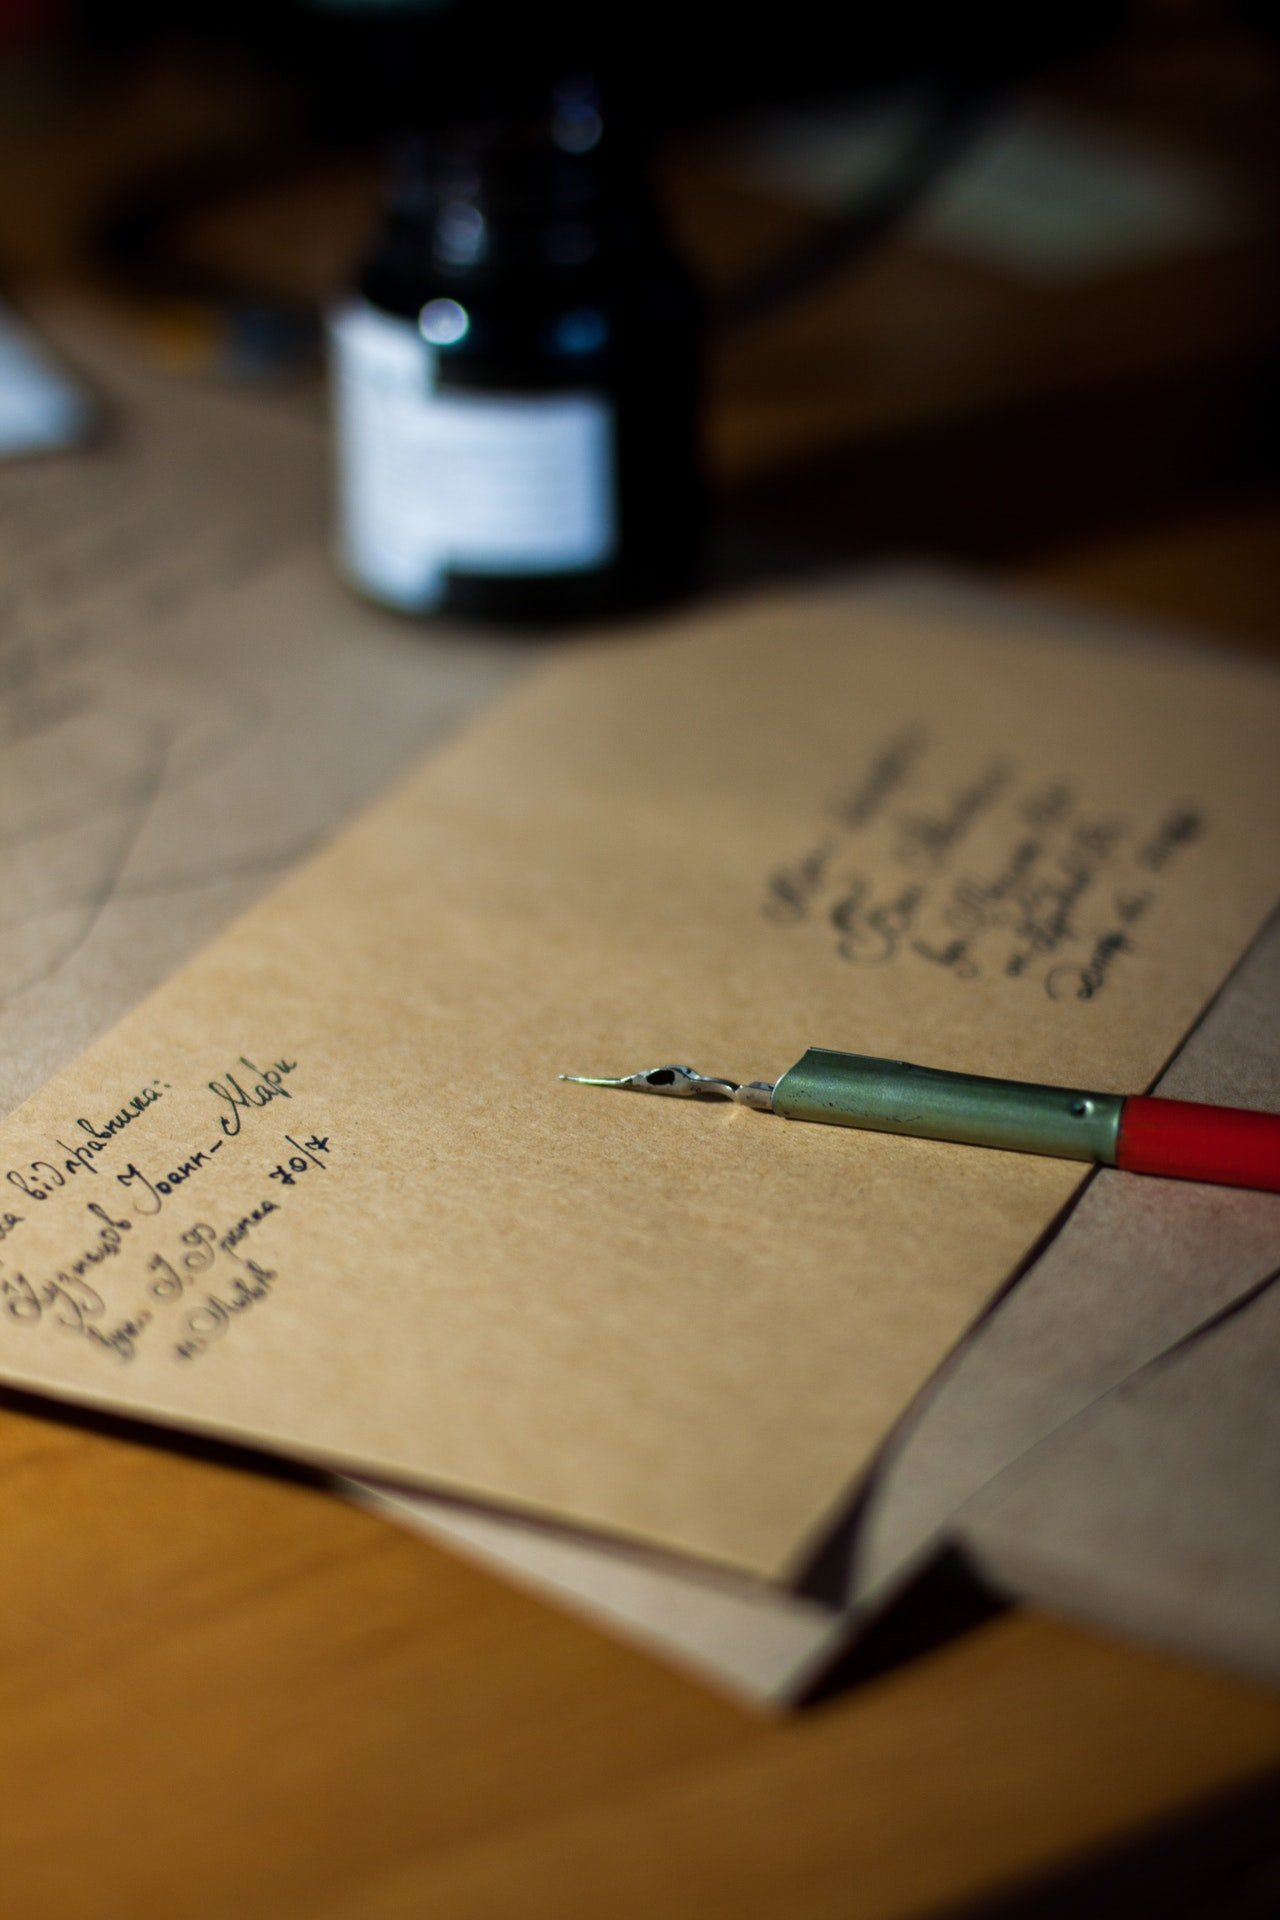 Photo of a brown envelope on a table | Photo: Pexels